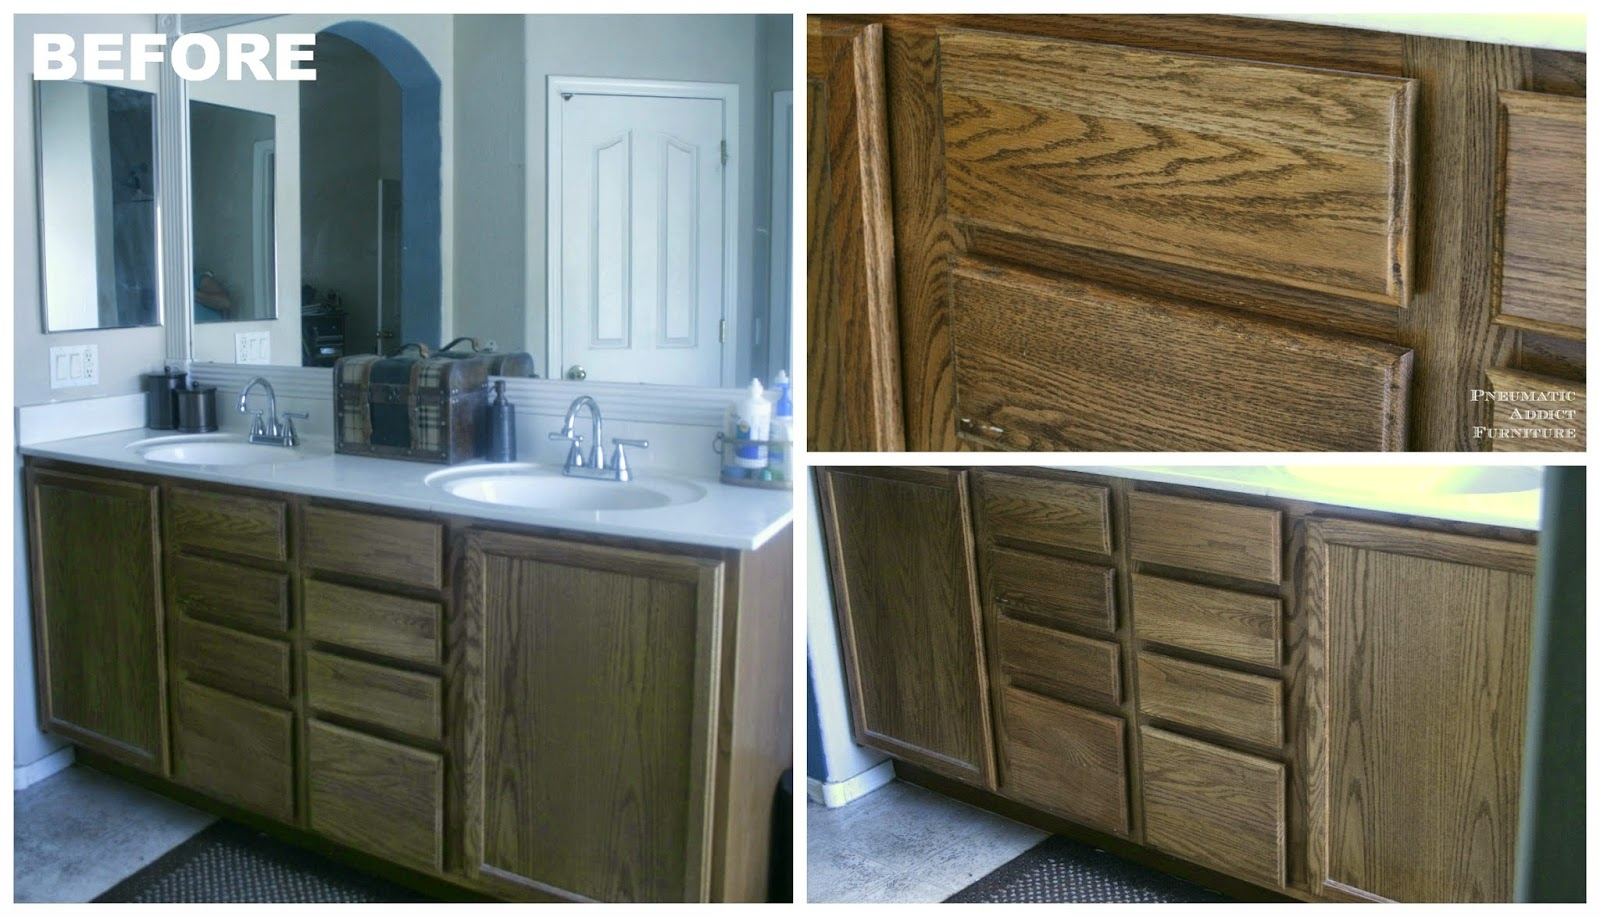 Restain Bathroom Cabinet Doorspneumatic addict darken cabinets without stripping the existing